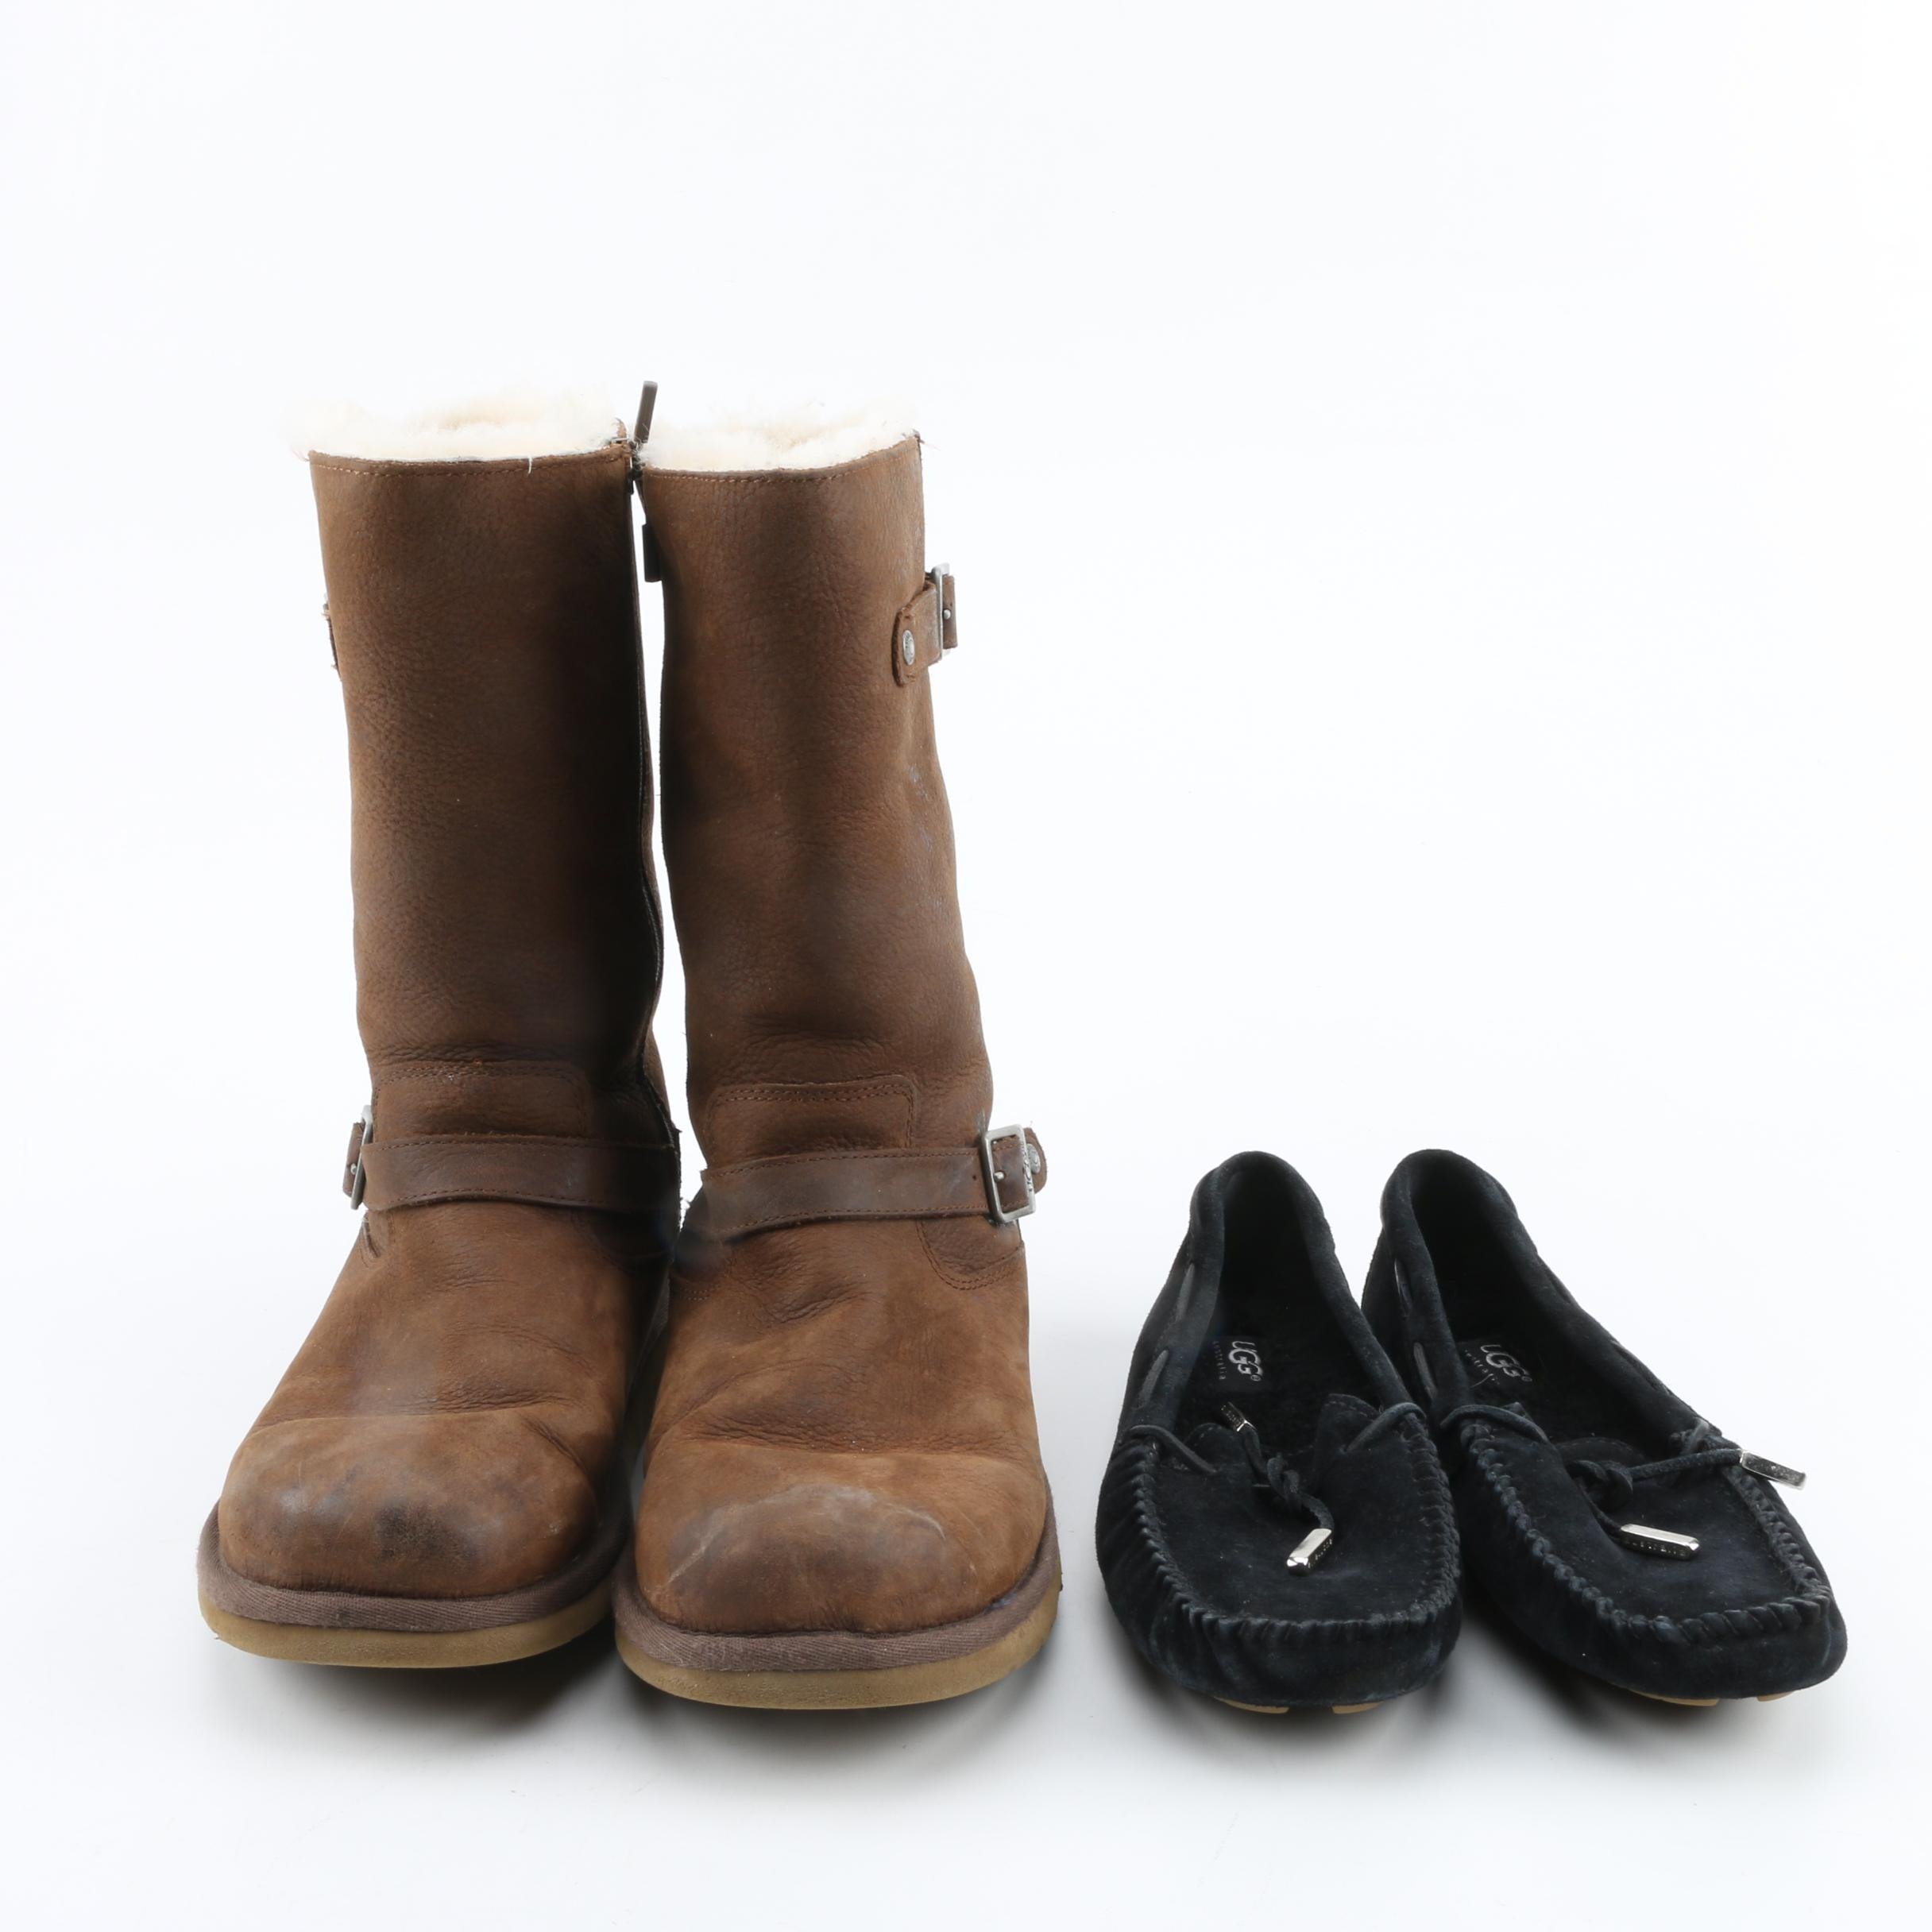 Women's UGG Sutter Boots and Loafers